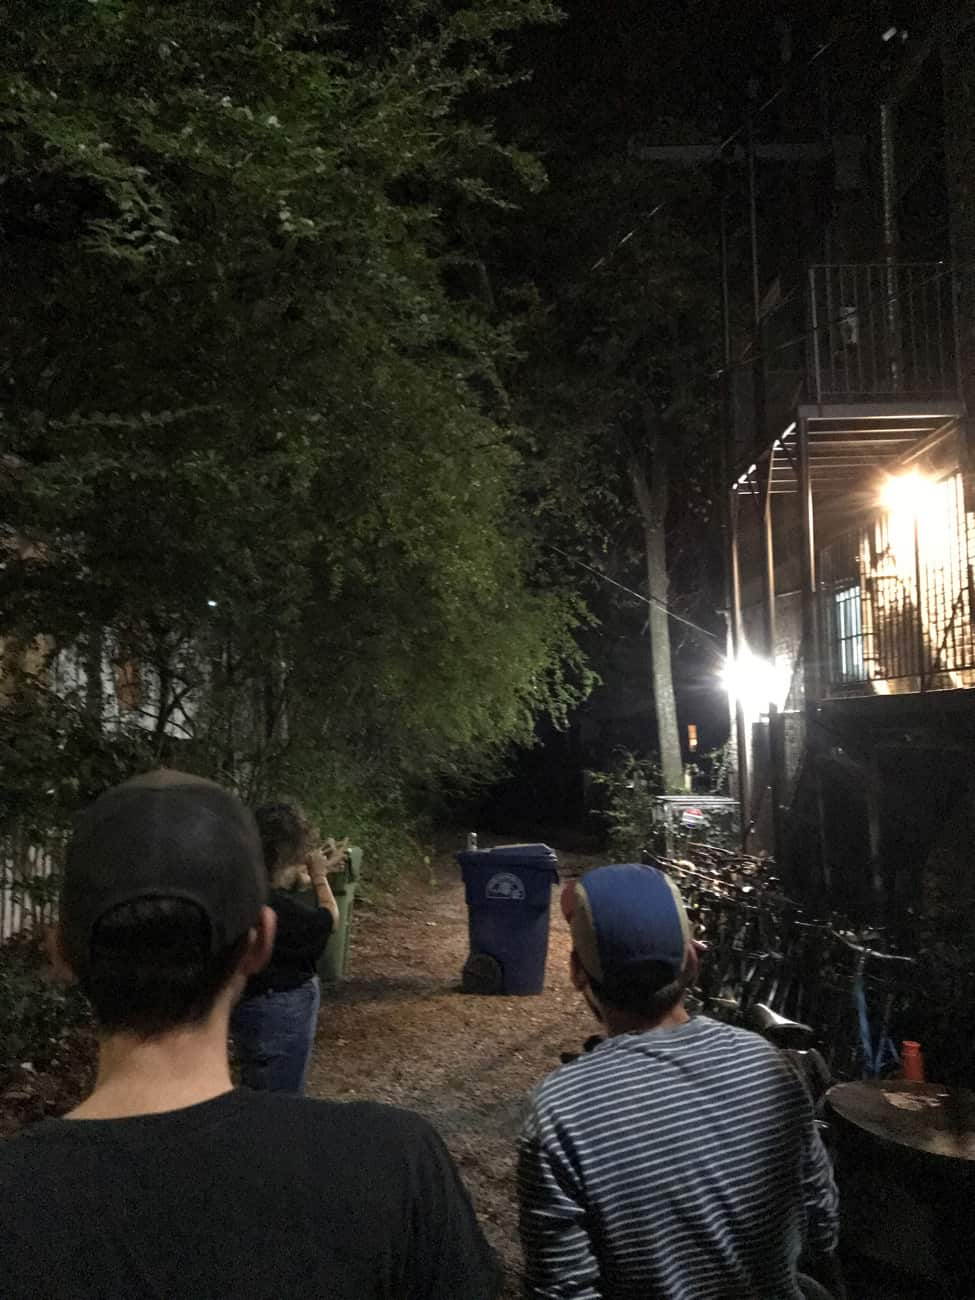 Rear view of 3 people looking into the trees at night, next to a  building with 2 bright lights mounted